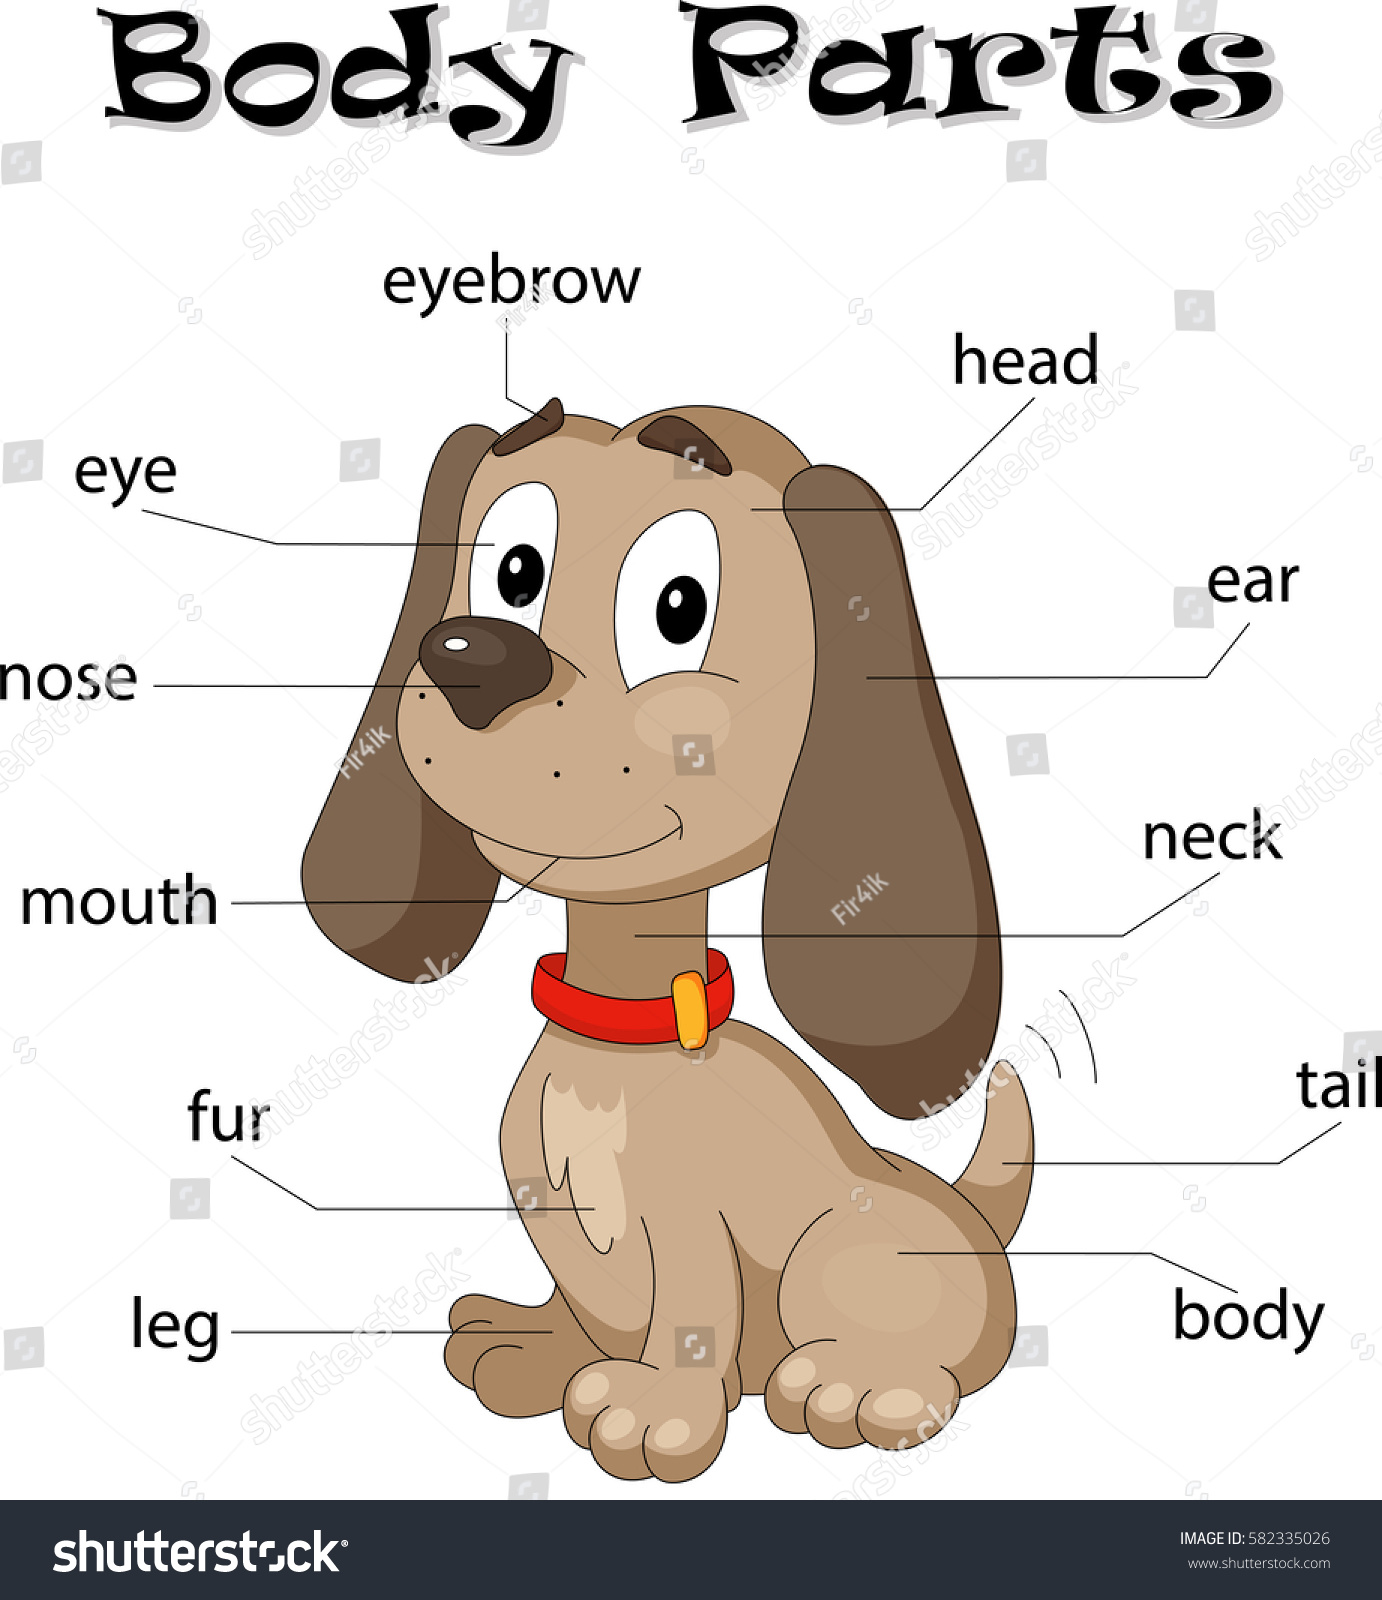 Dog Body Parts Animal Anatomy English Stock Vector (Royalty Free ...